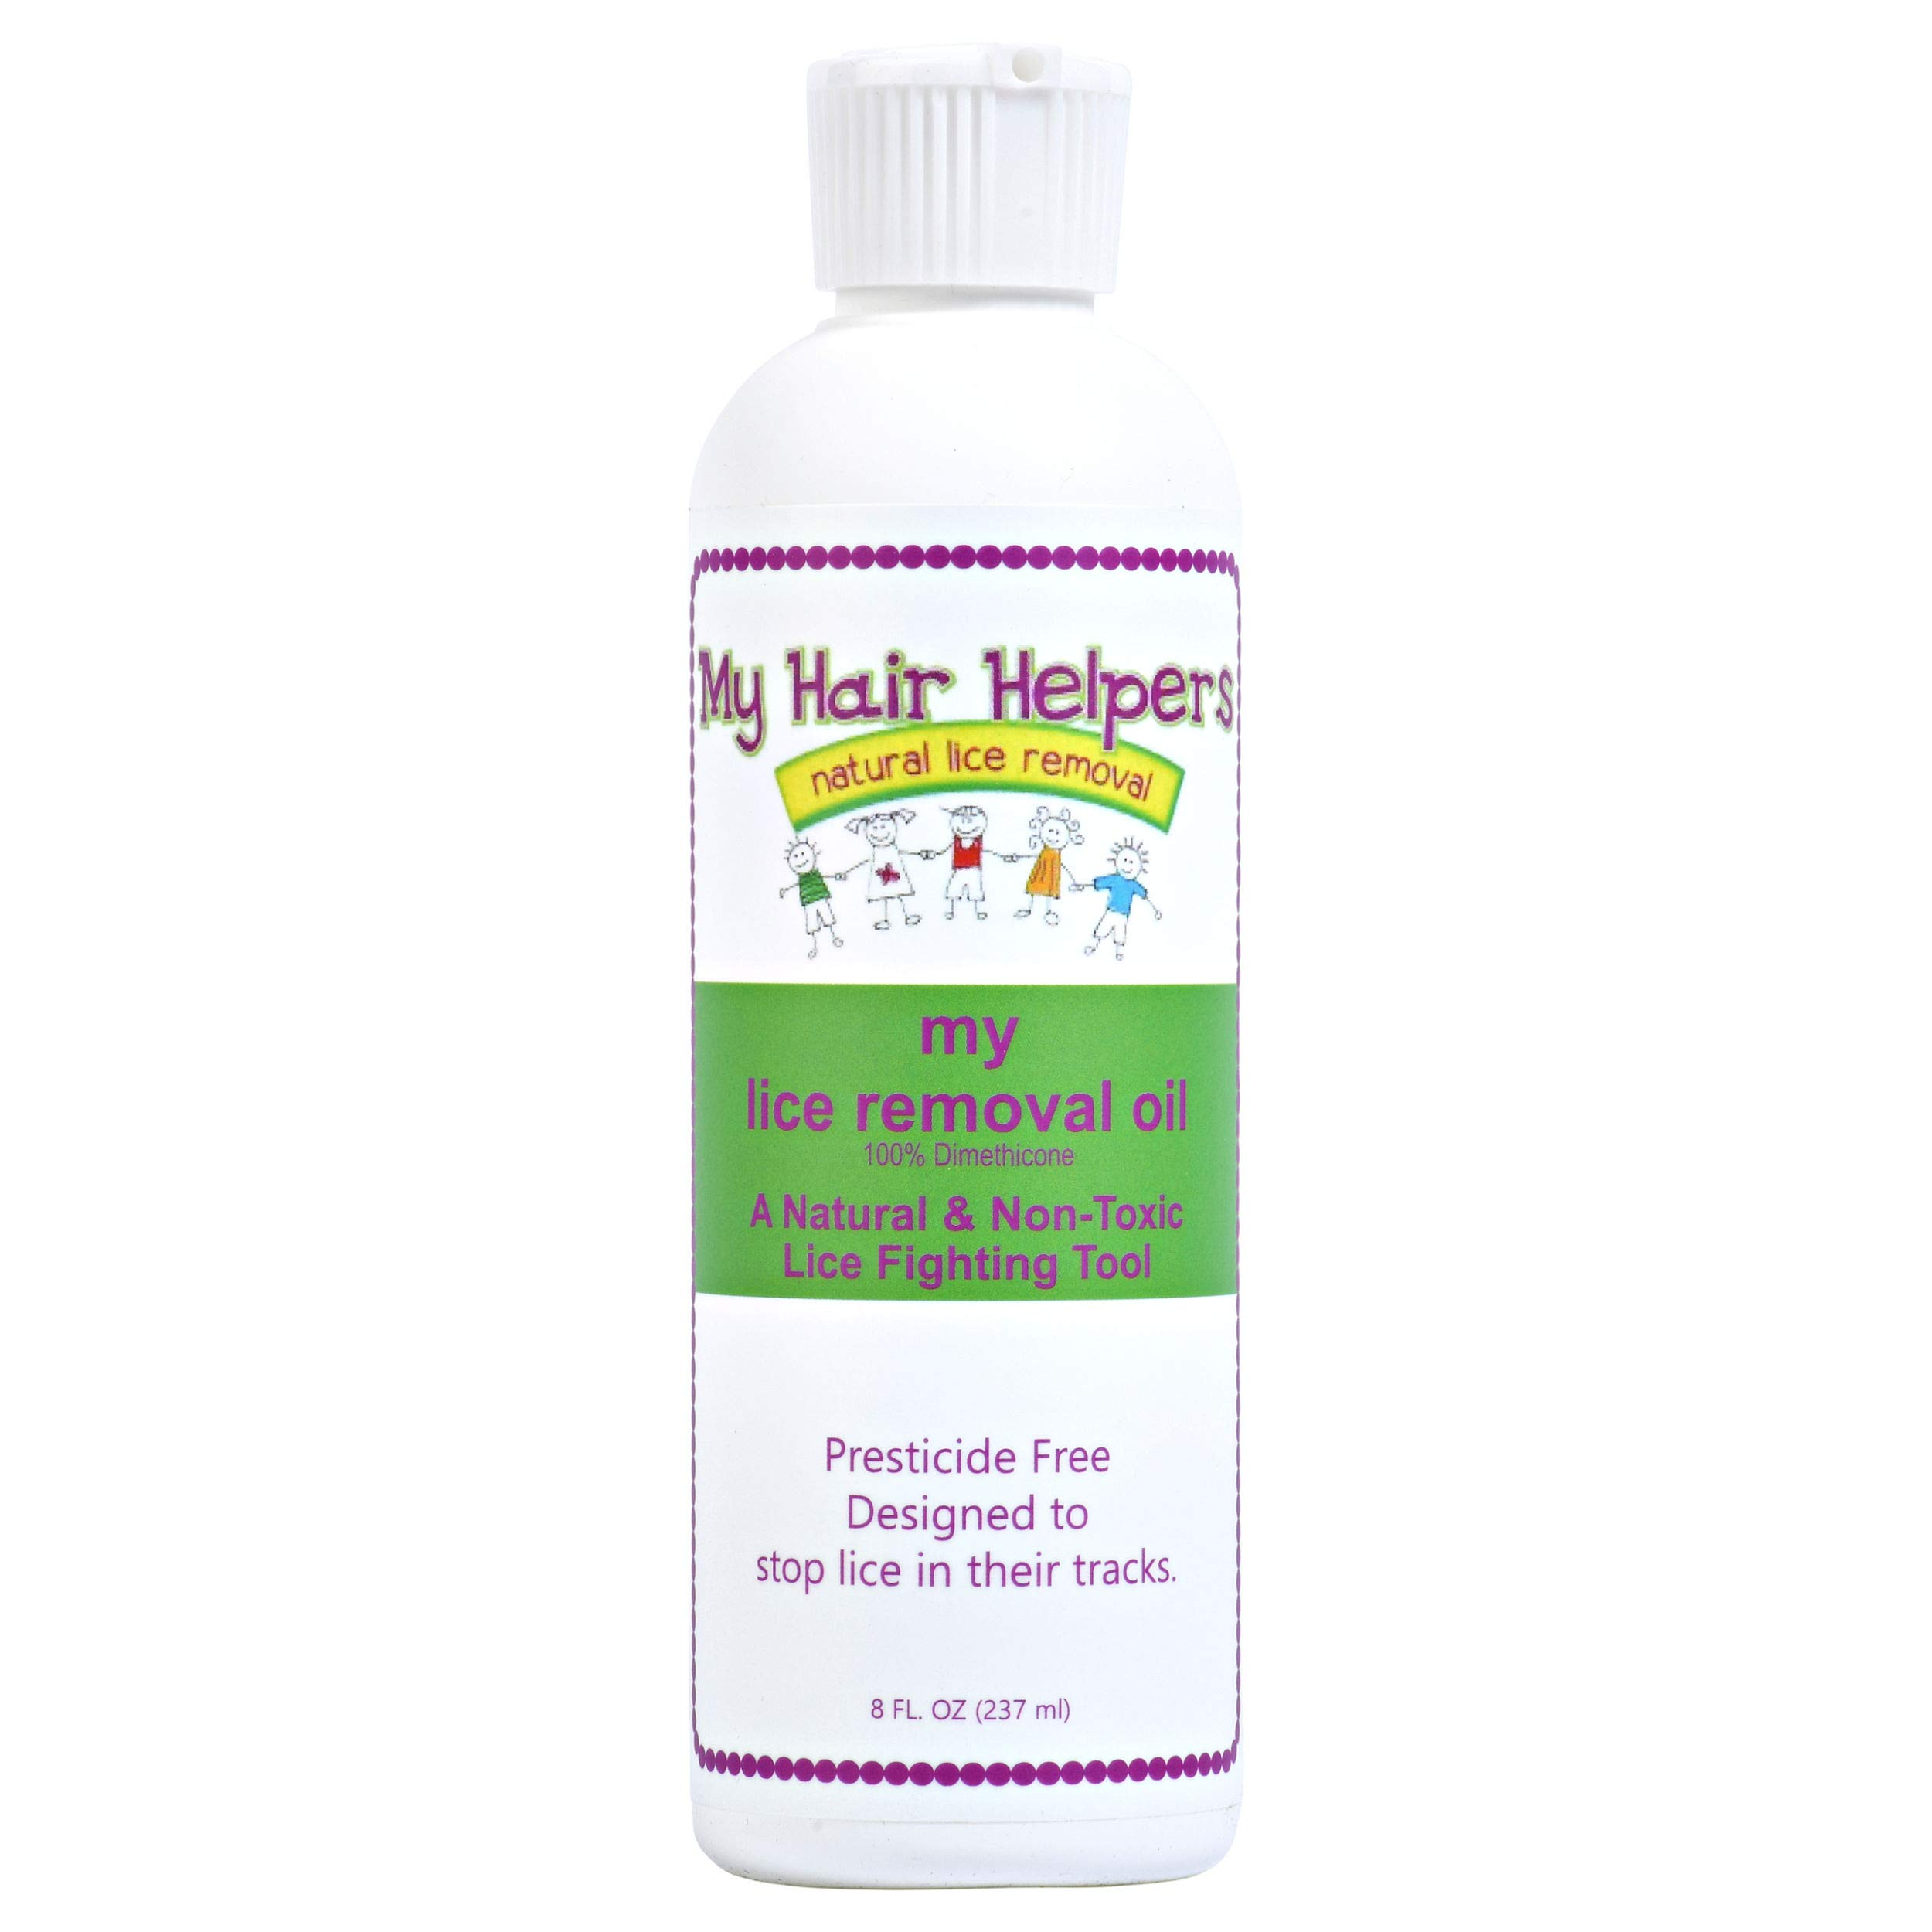 Lice Removal Oil Safe Non-Toxic Treatment Kills Lice and Their Eggs 8 fl Ounces Treats 1-3 People by MY HAIR HELPERS NATURAL LICE REMOVAL